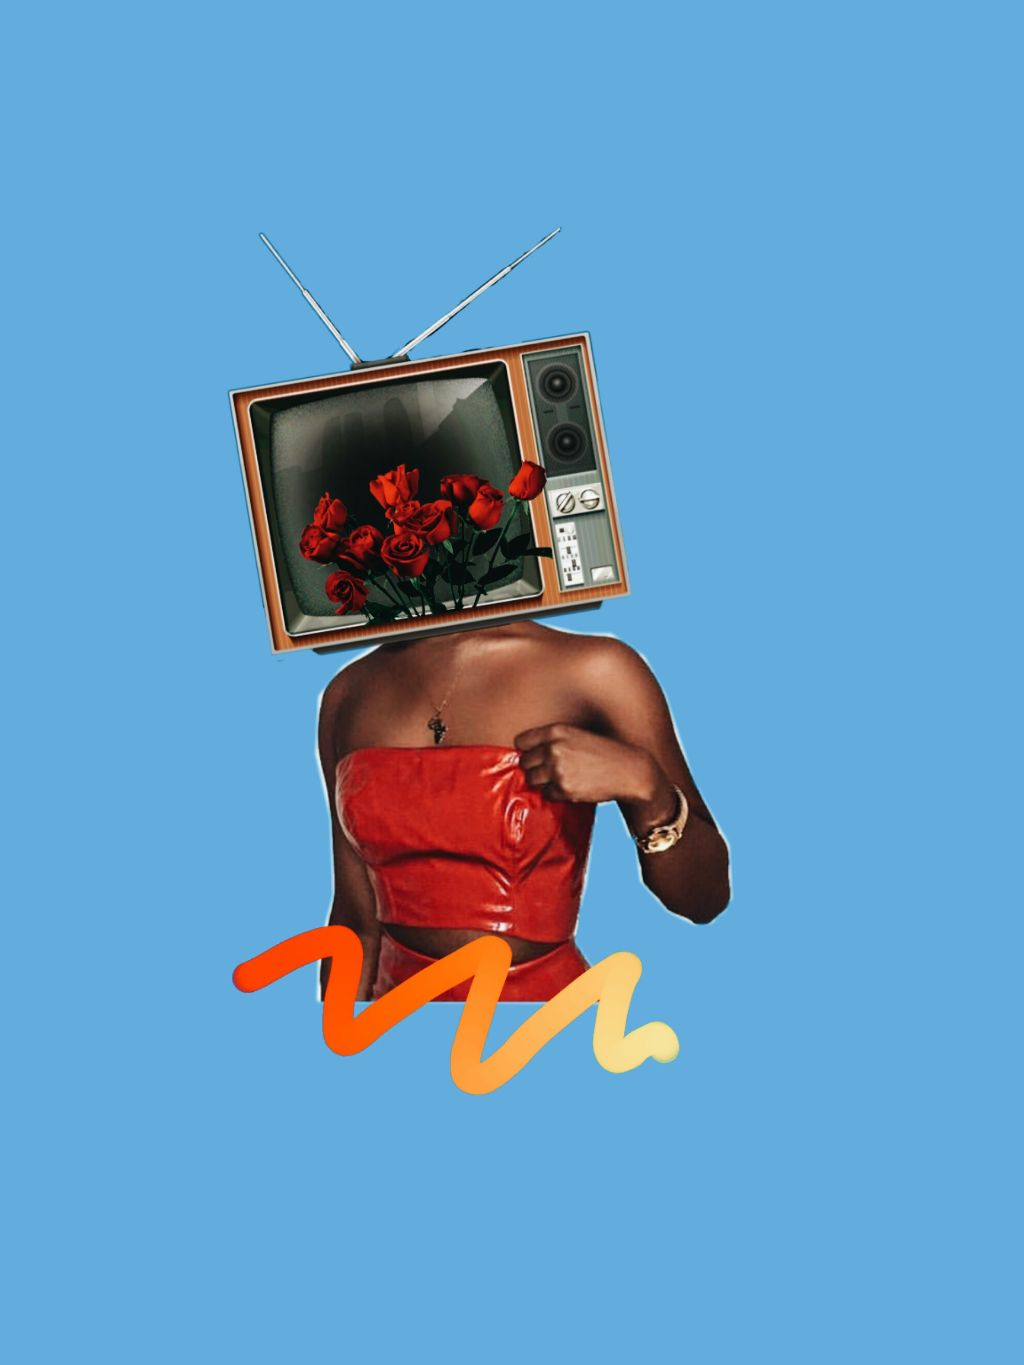 We don't believe what's on tv #freetoedit #collage #collageart #collageoftheday #surreal #woman #tv #twentyonepilotslyrics #red